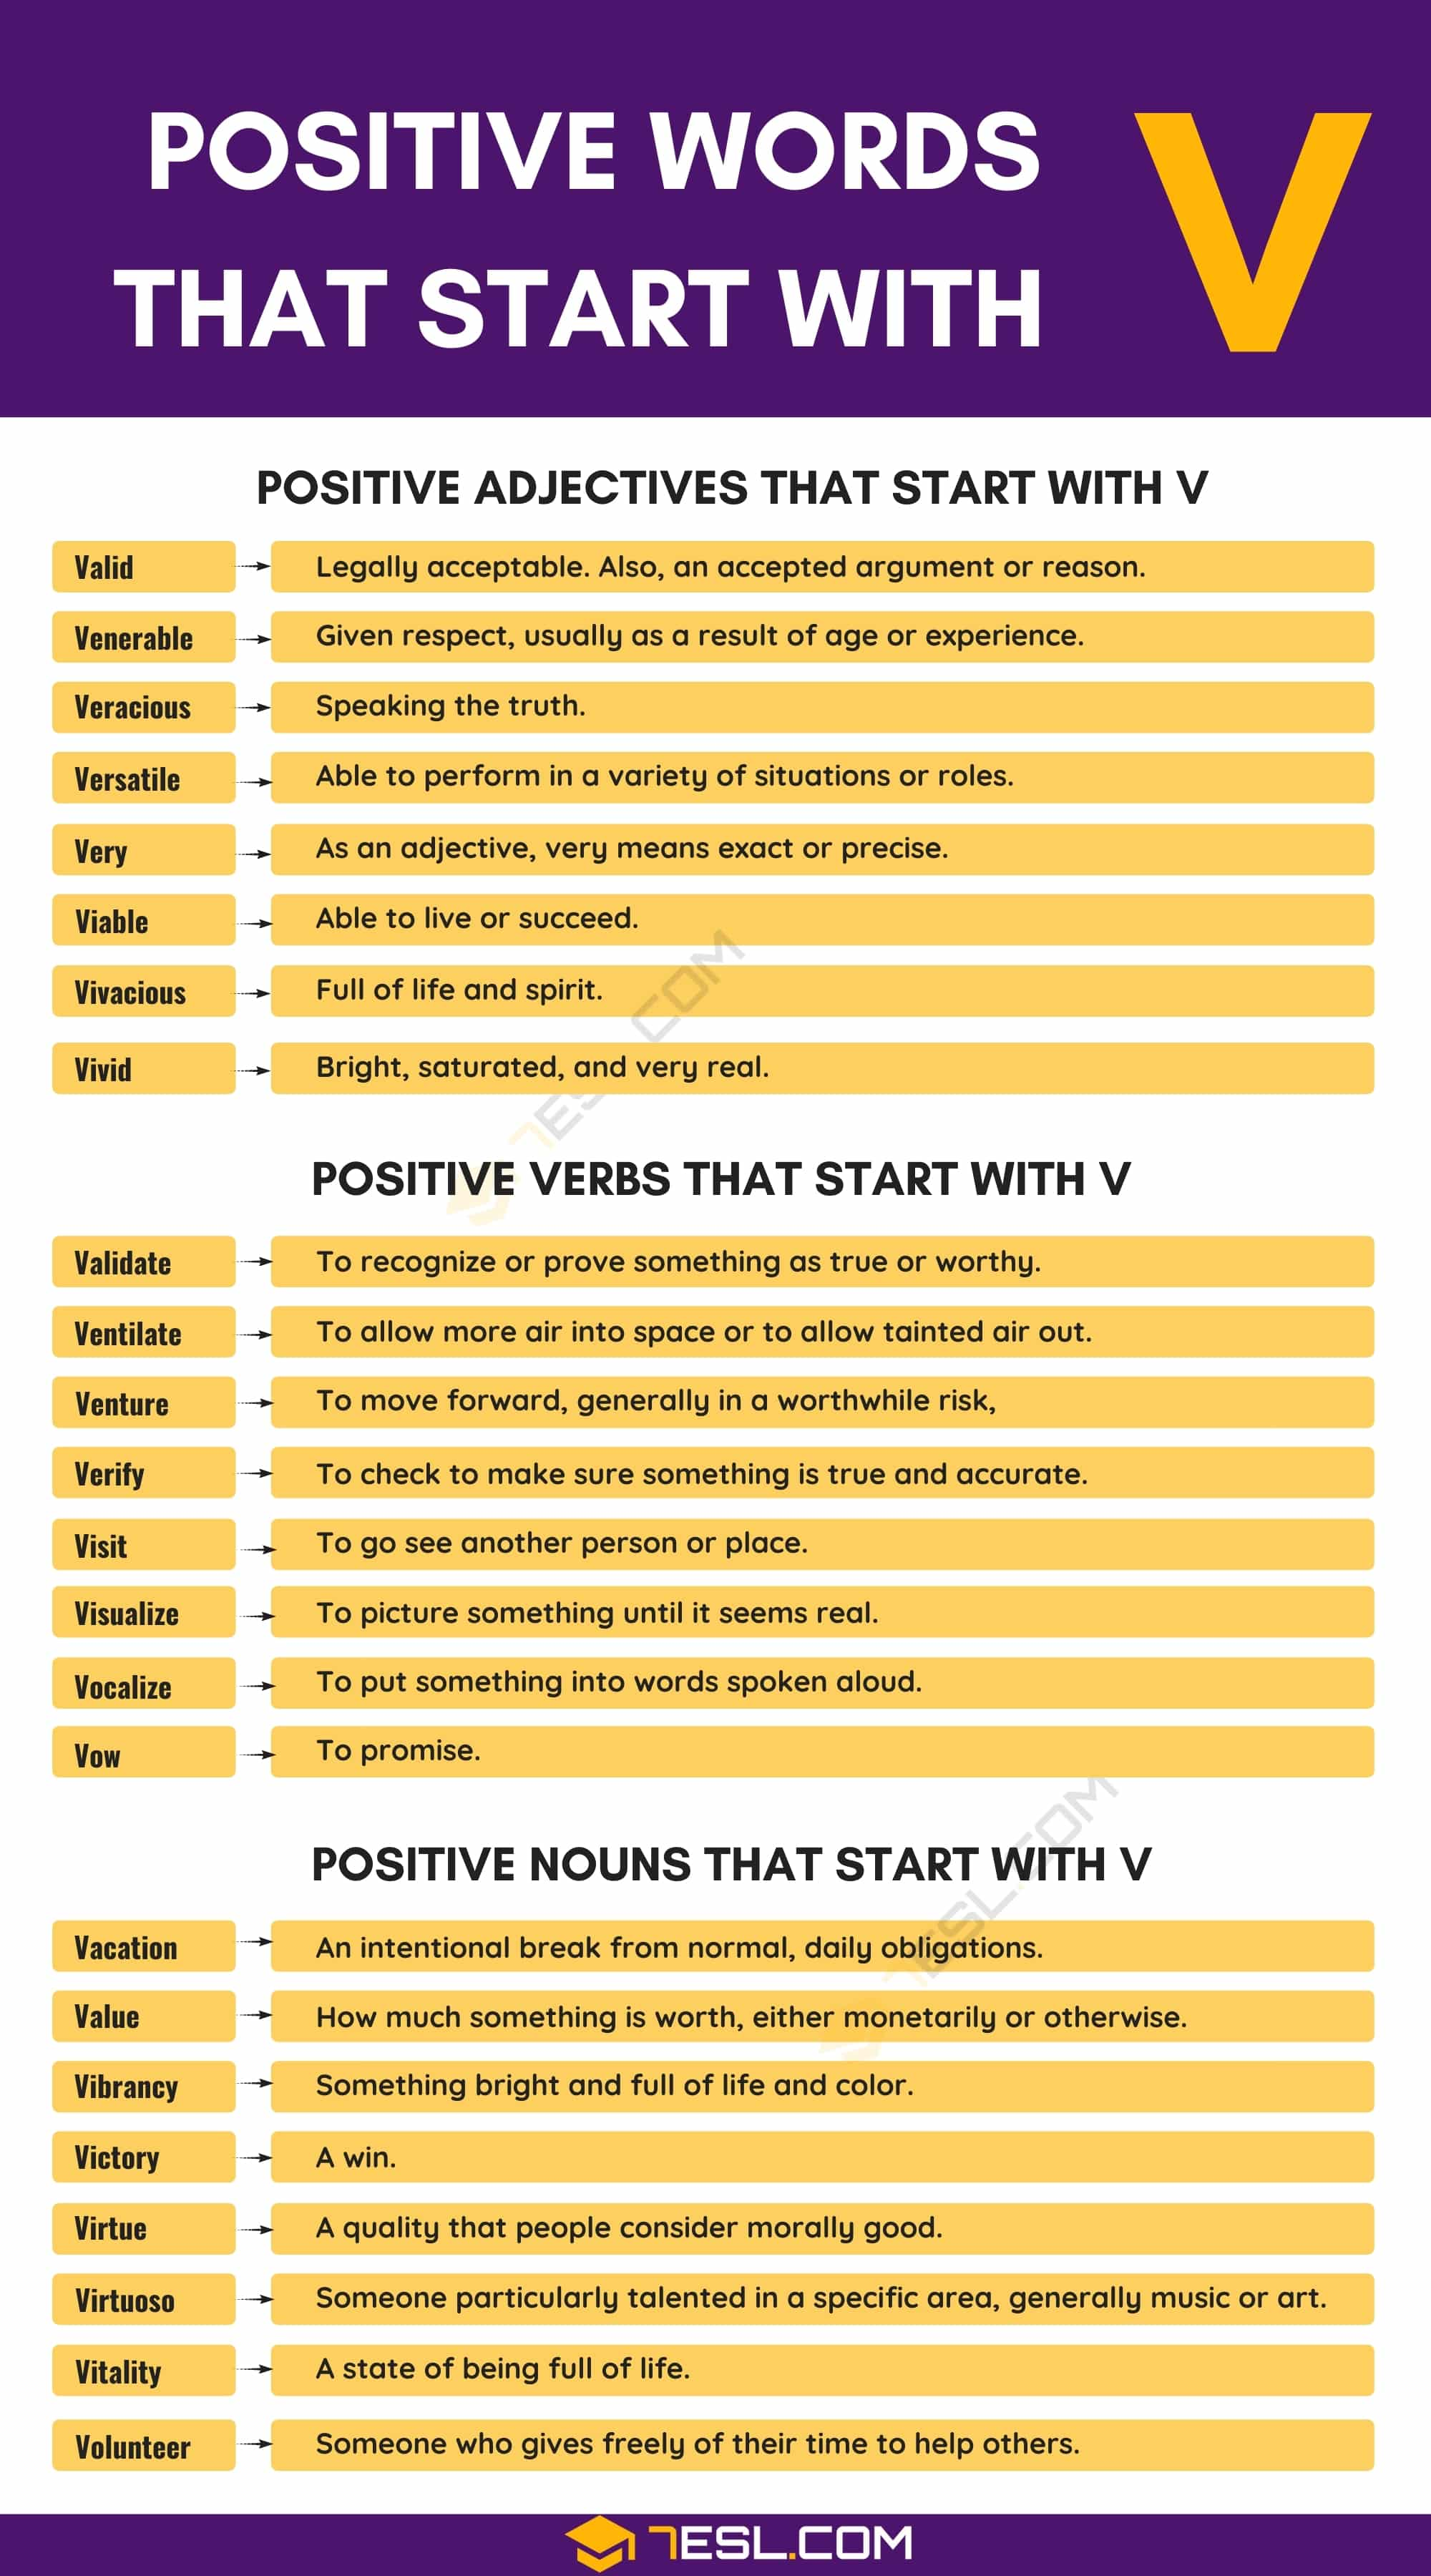 Positive Words that Start with V (Adjectives, Verbs, Nouns)